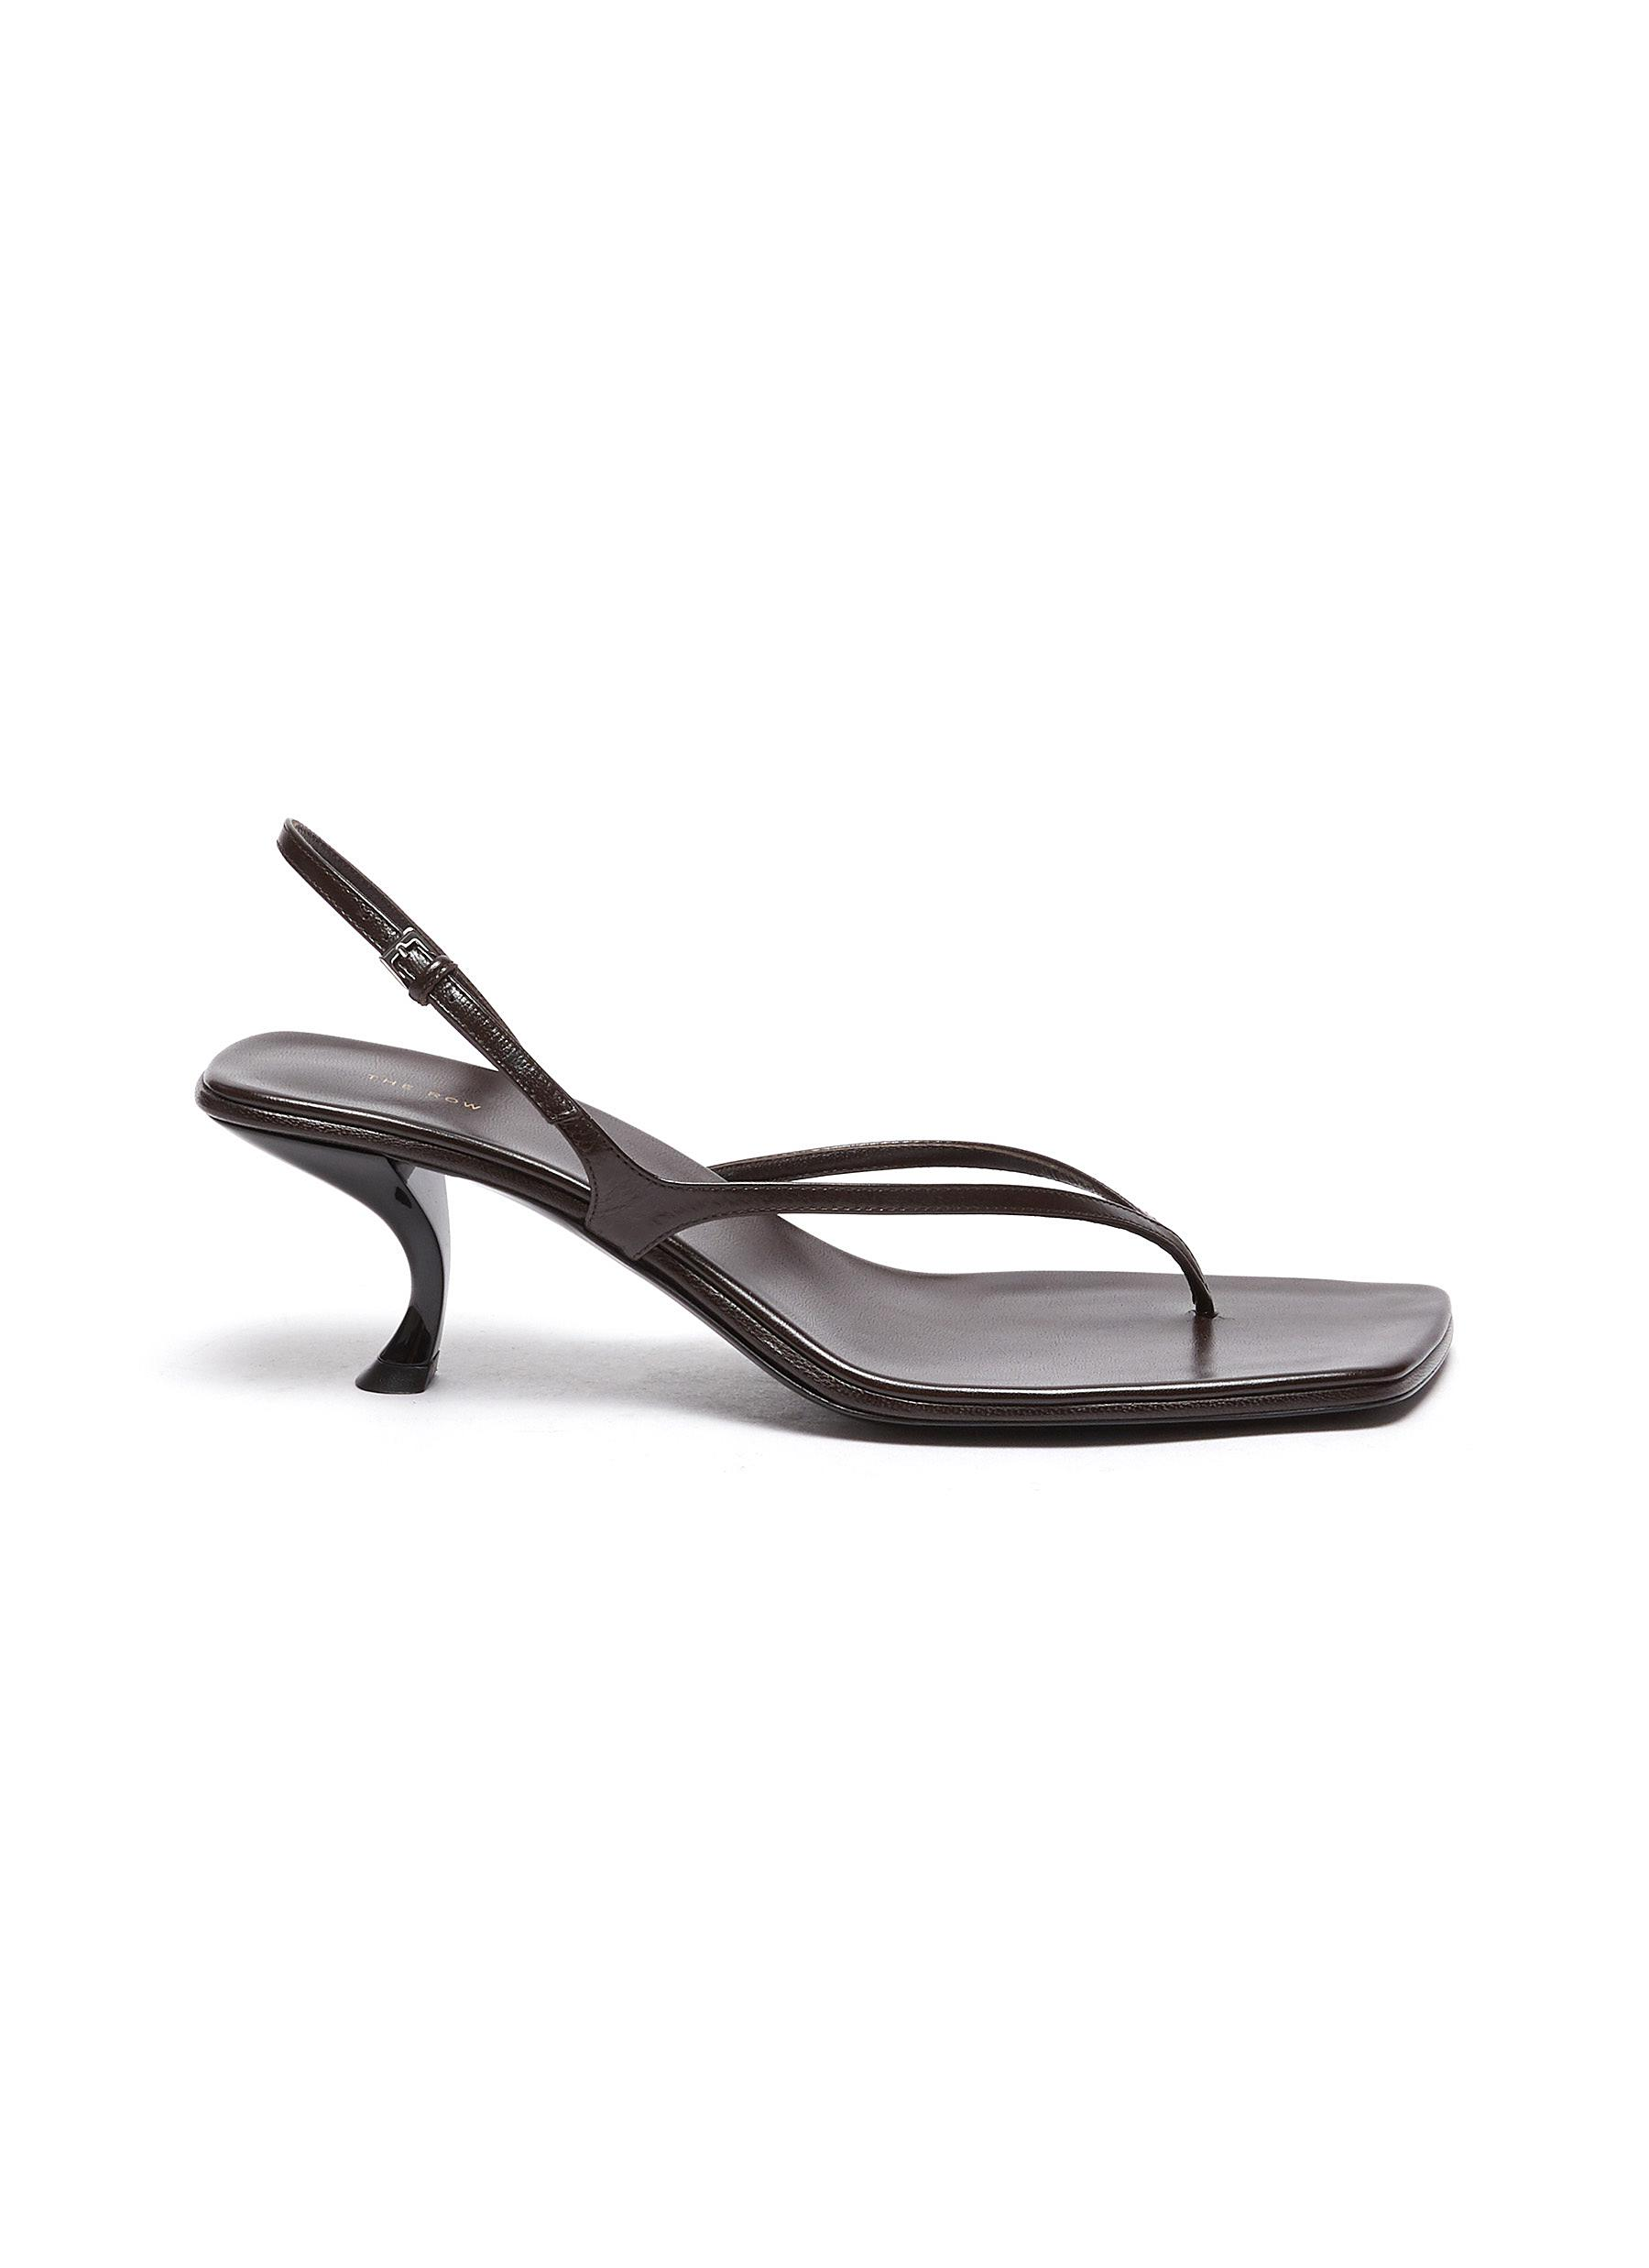 The Row 'CONSTANCE' SCULPTED HEEL STRAPPY THONG SLINGBACK LEATHER SANDALS